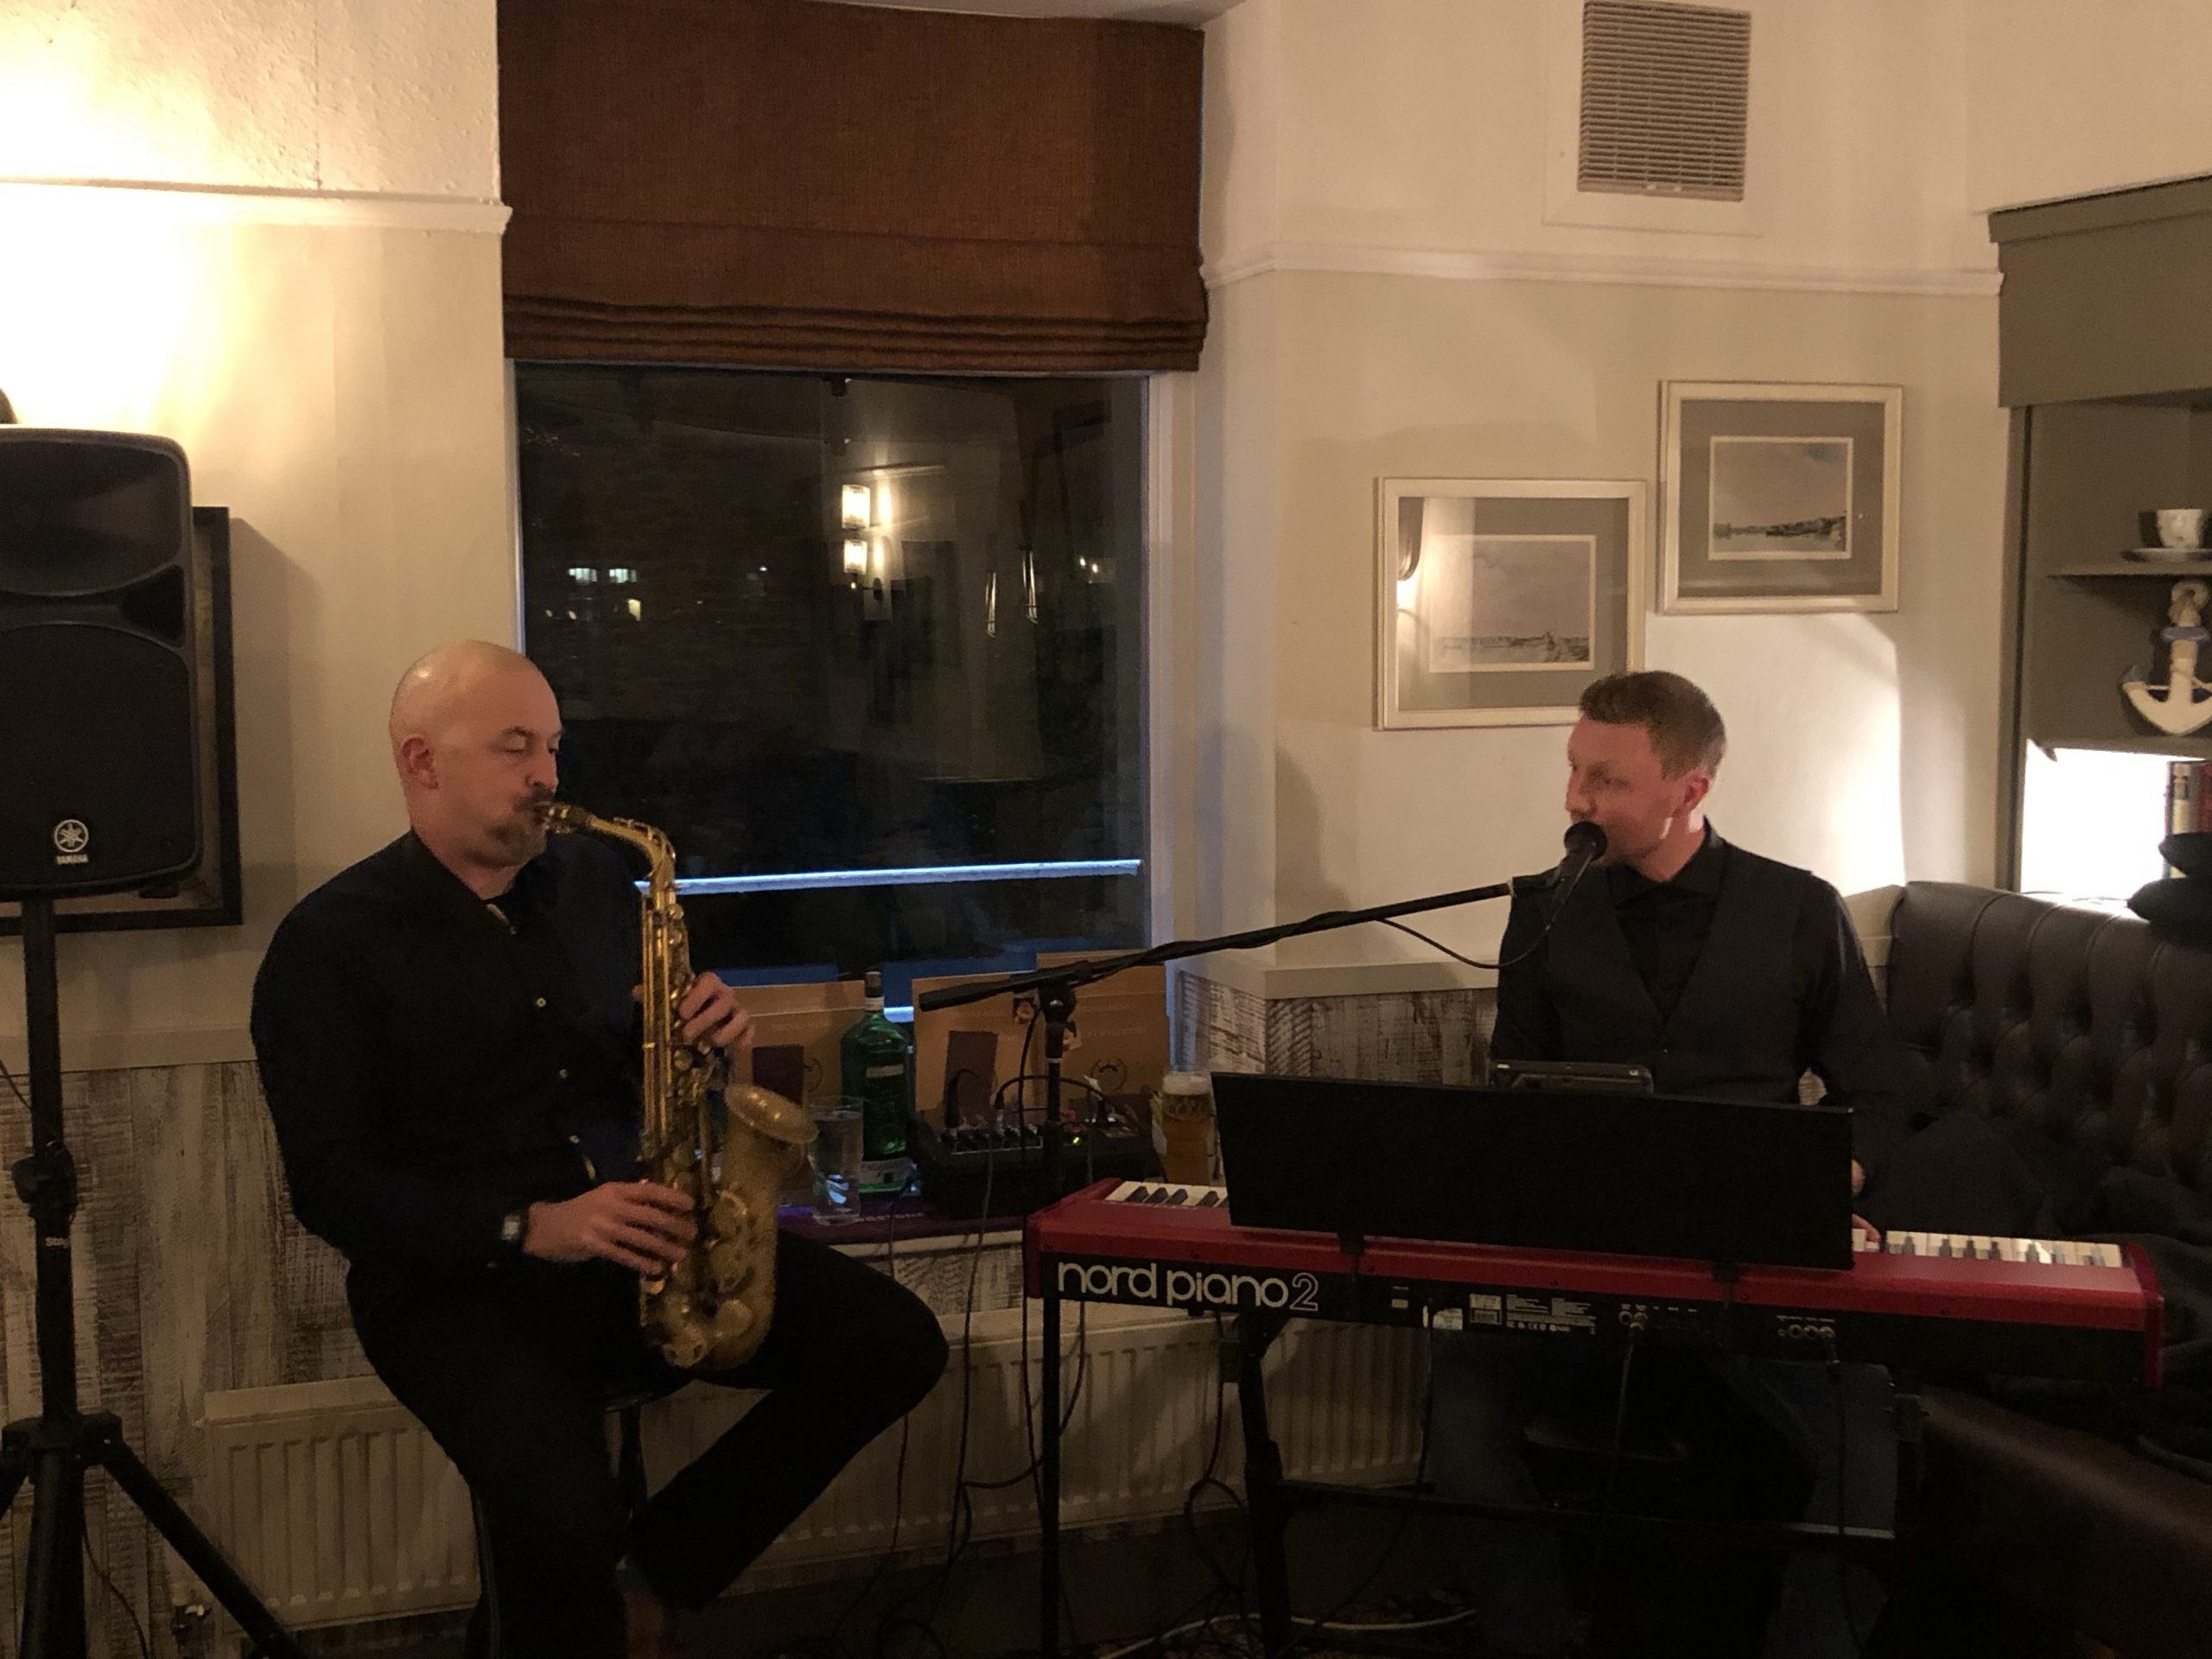 Steak and Live Music here at the Dalton Arms tonight with Fred Binley Duo